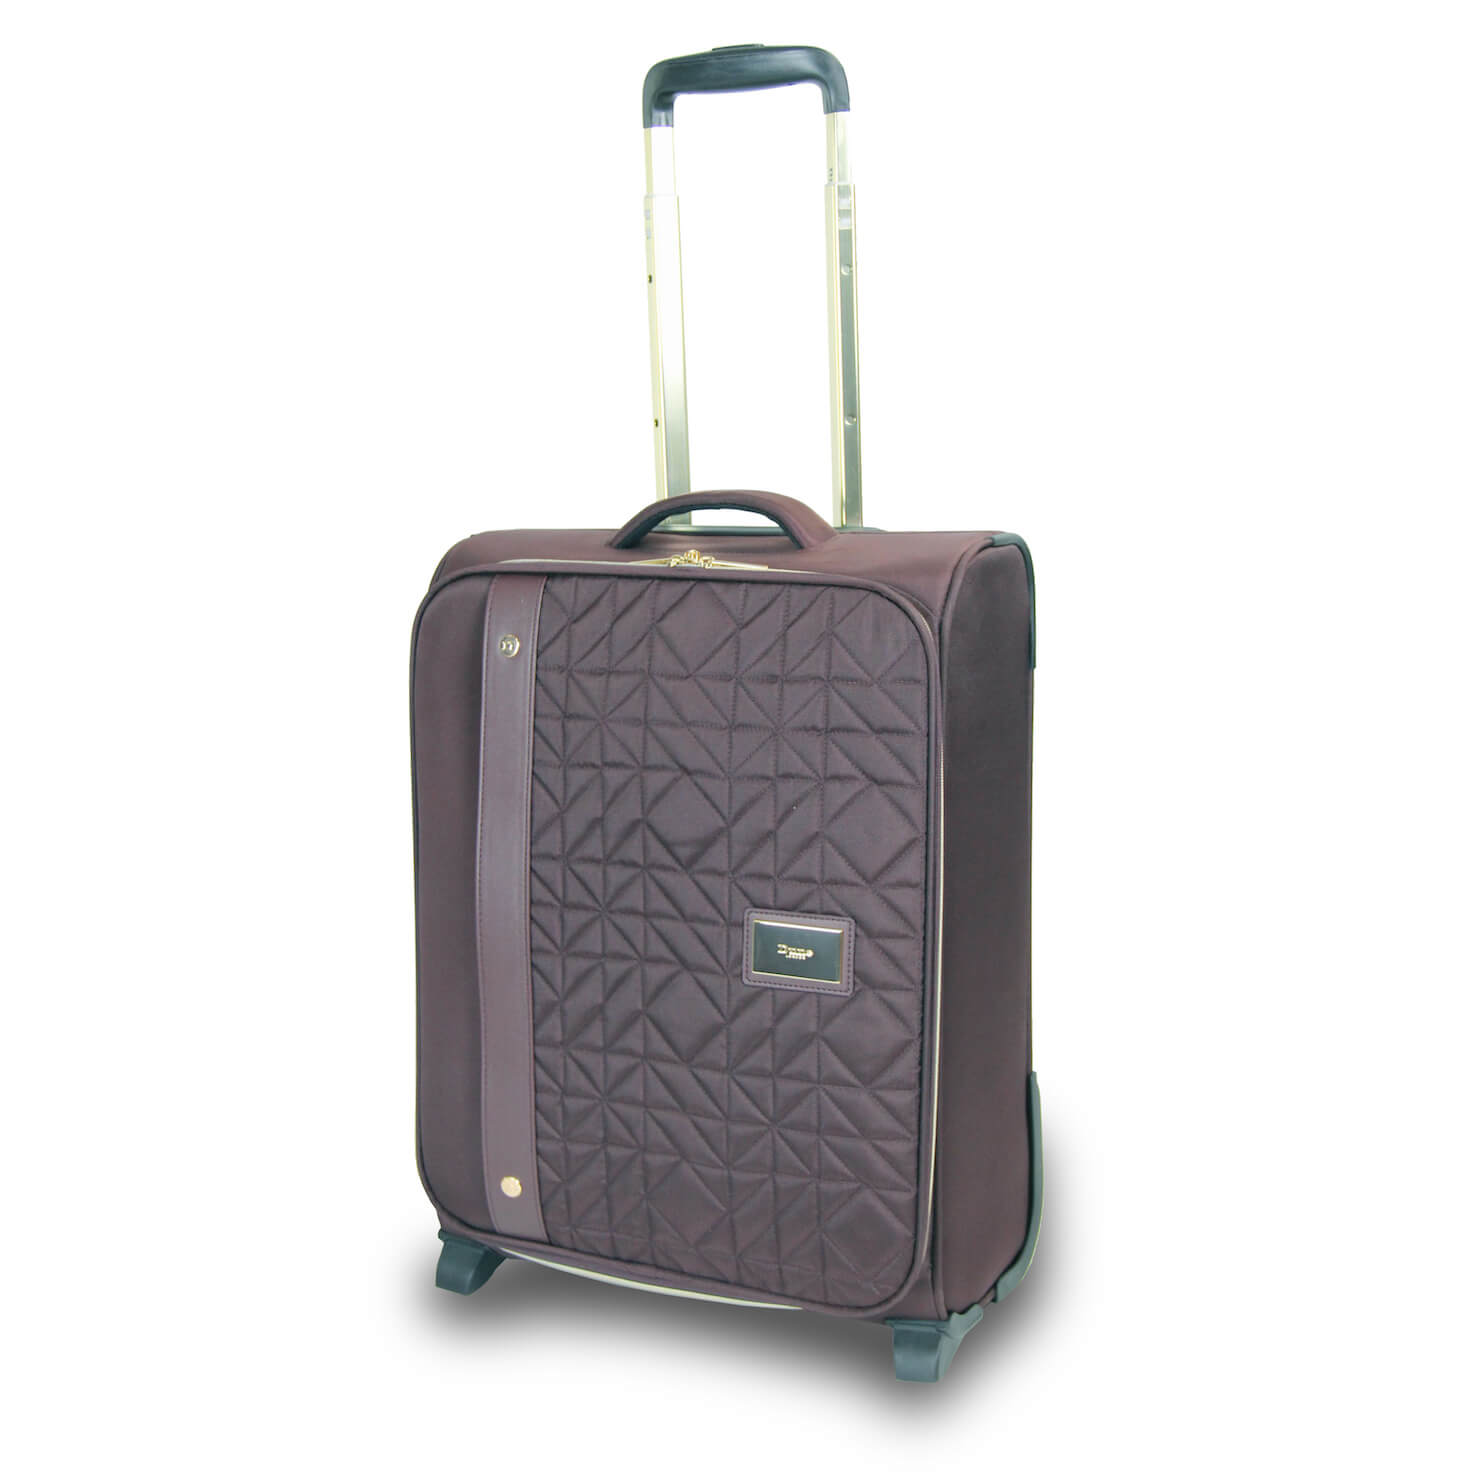 Dune London Tamara 55cm 2-Wheel Cabin Case